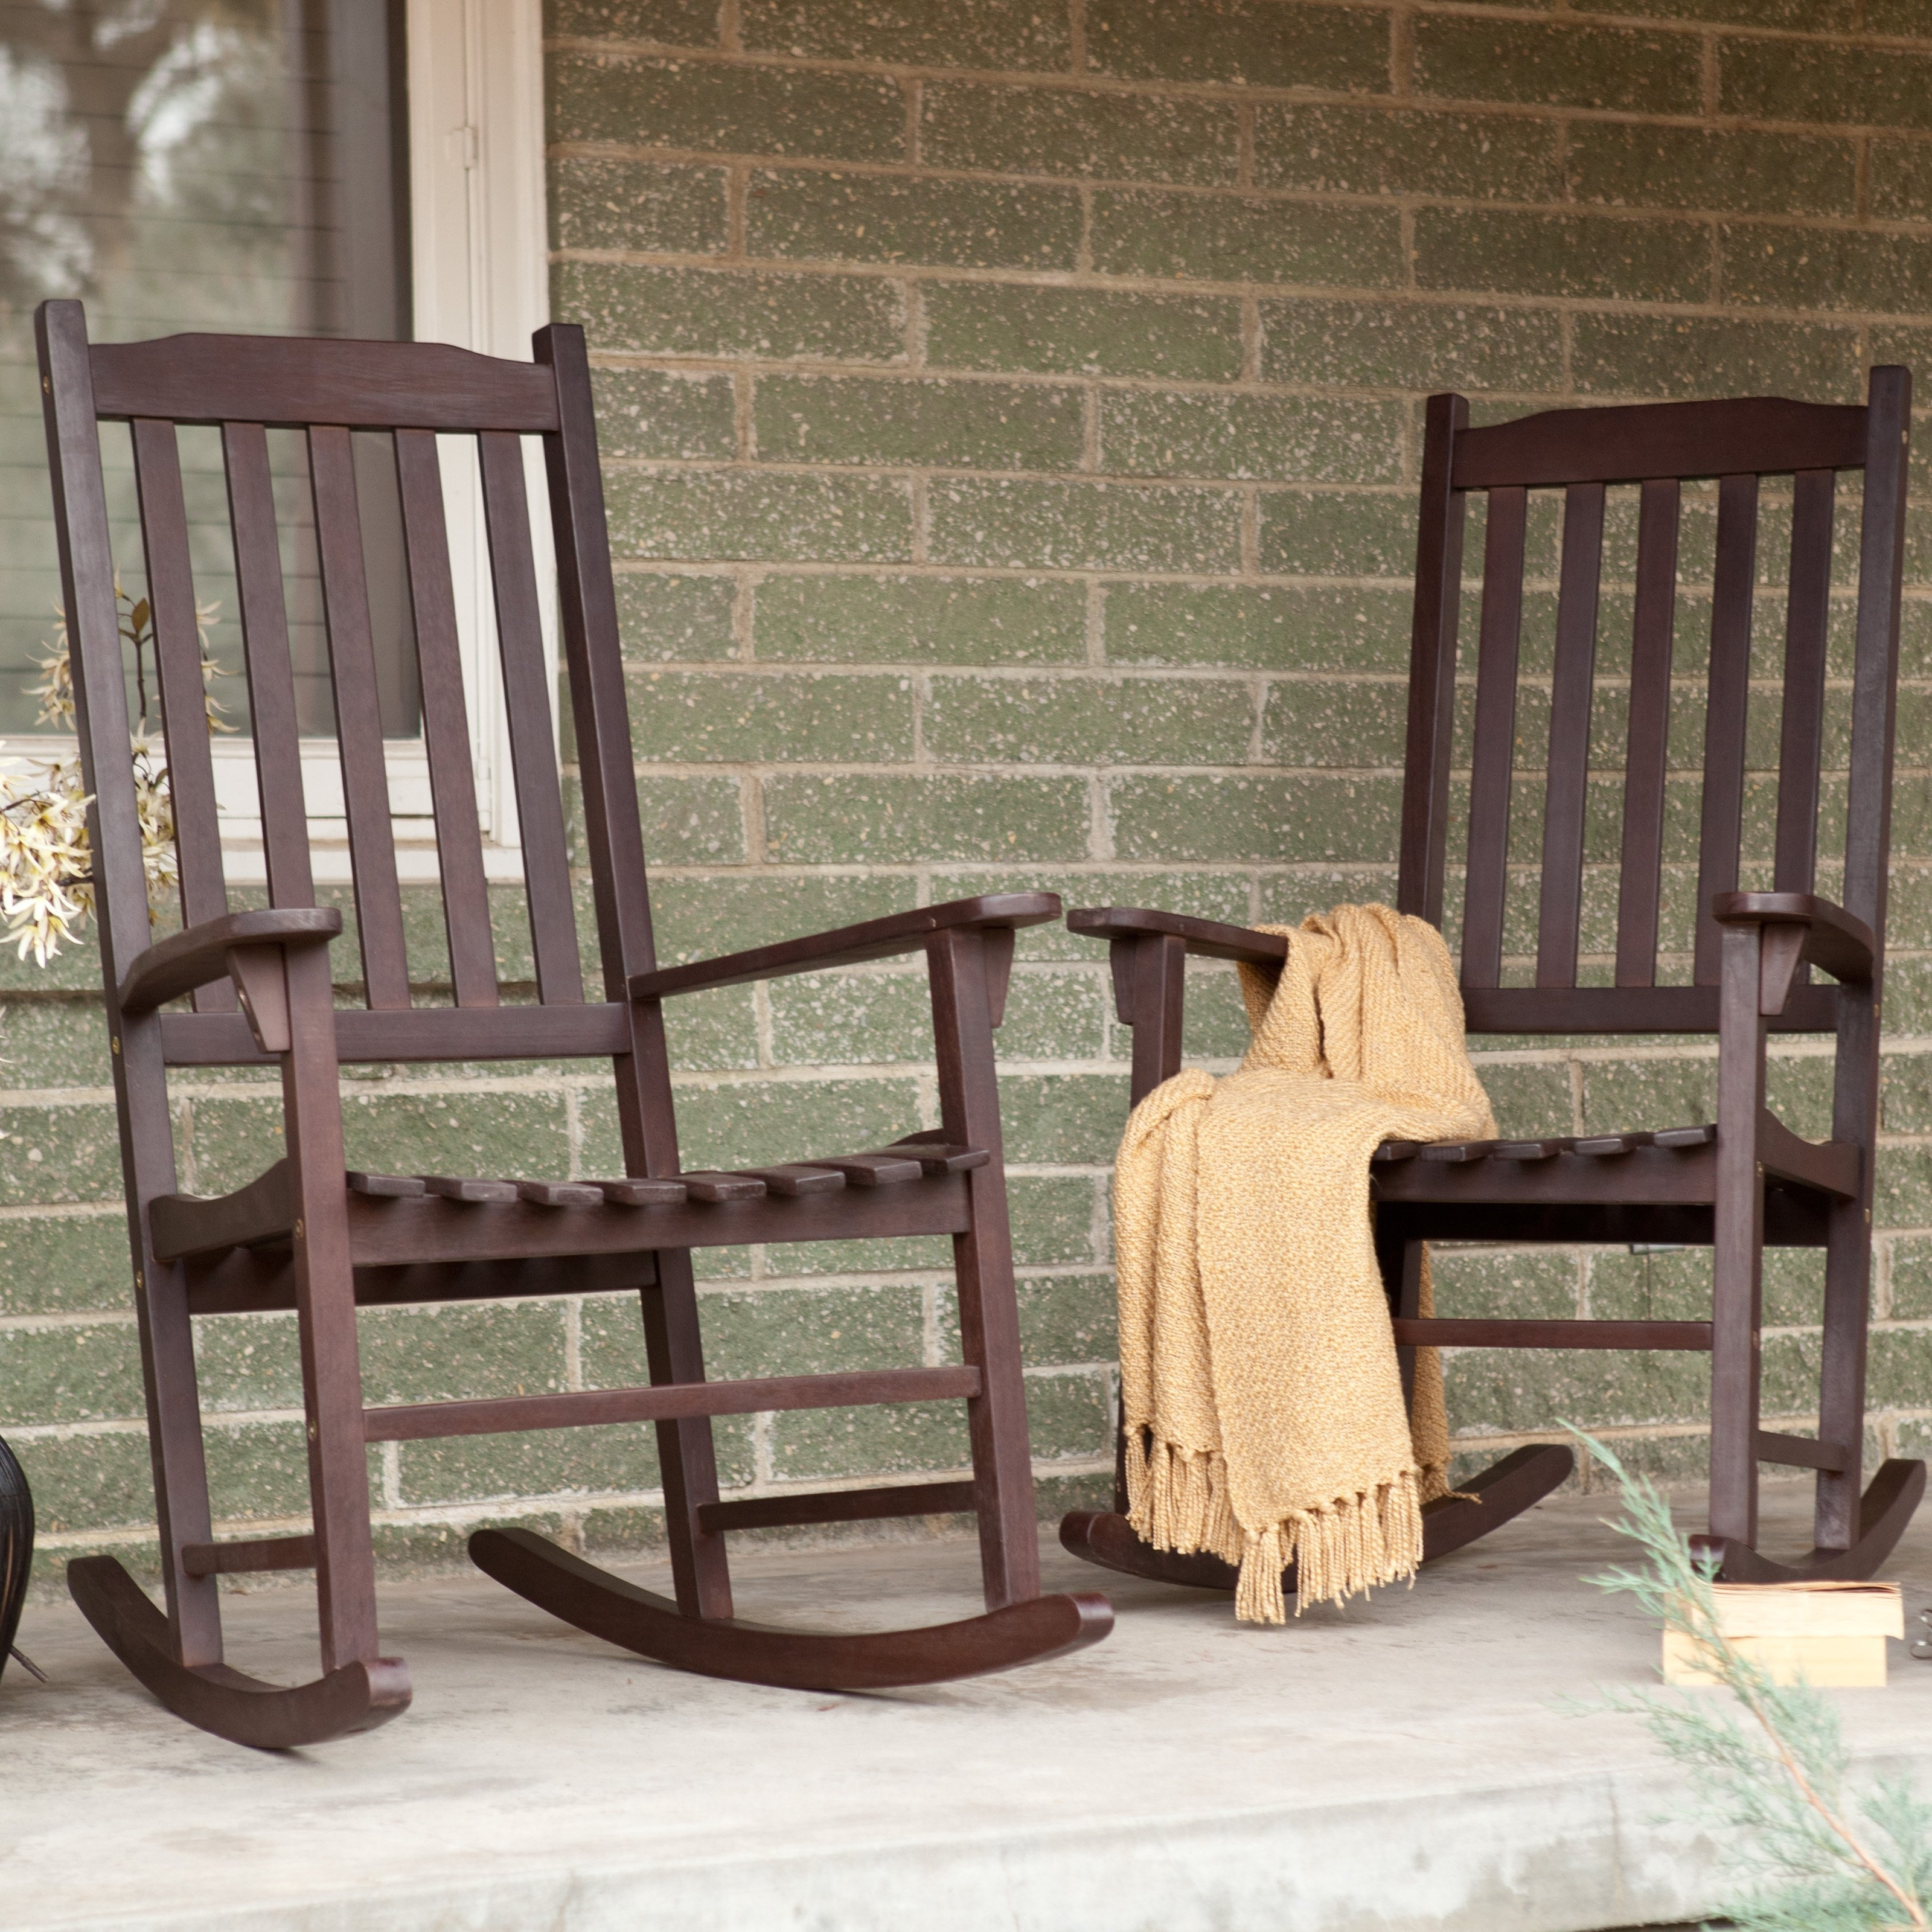 Current How To Choose Comfortable Outdoor Rocking Chairs – Yonohomedesign Throughout Outdoor Rocking Chairs (View 12 of 15)